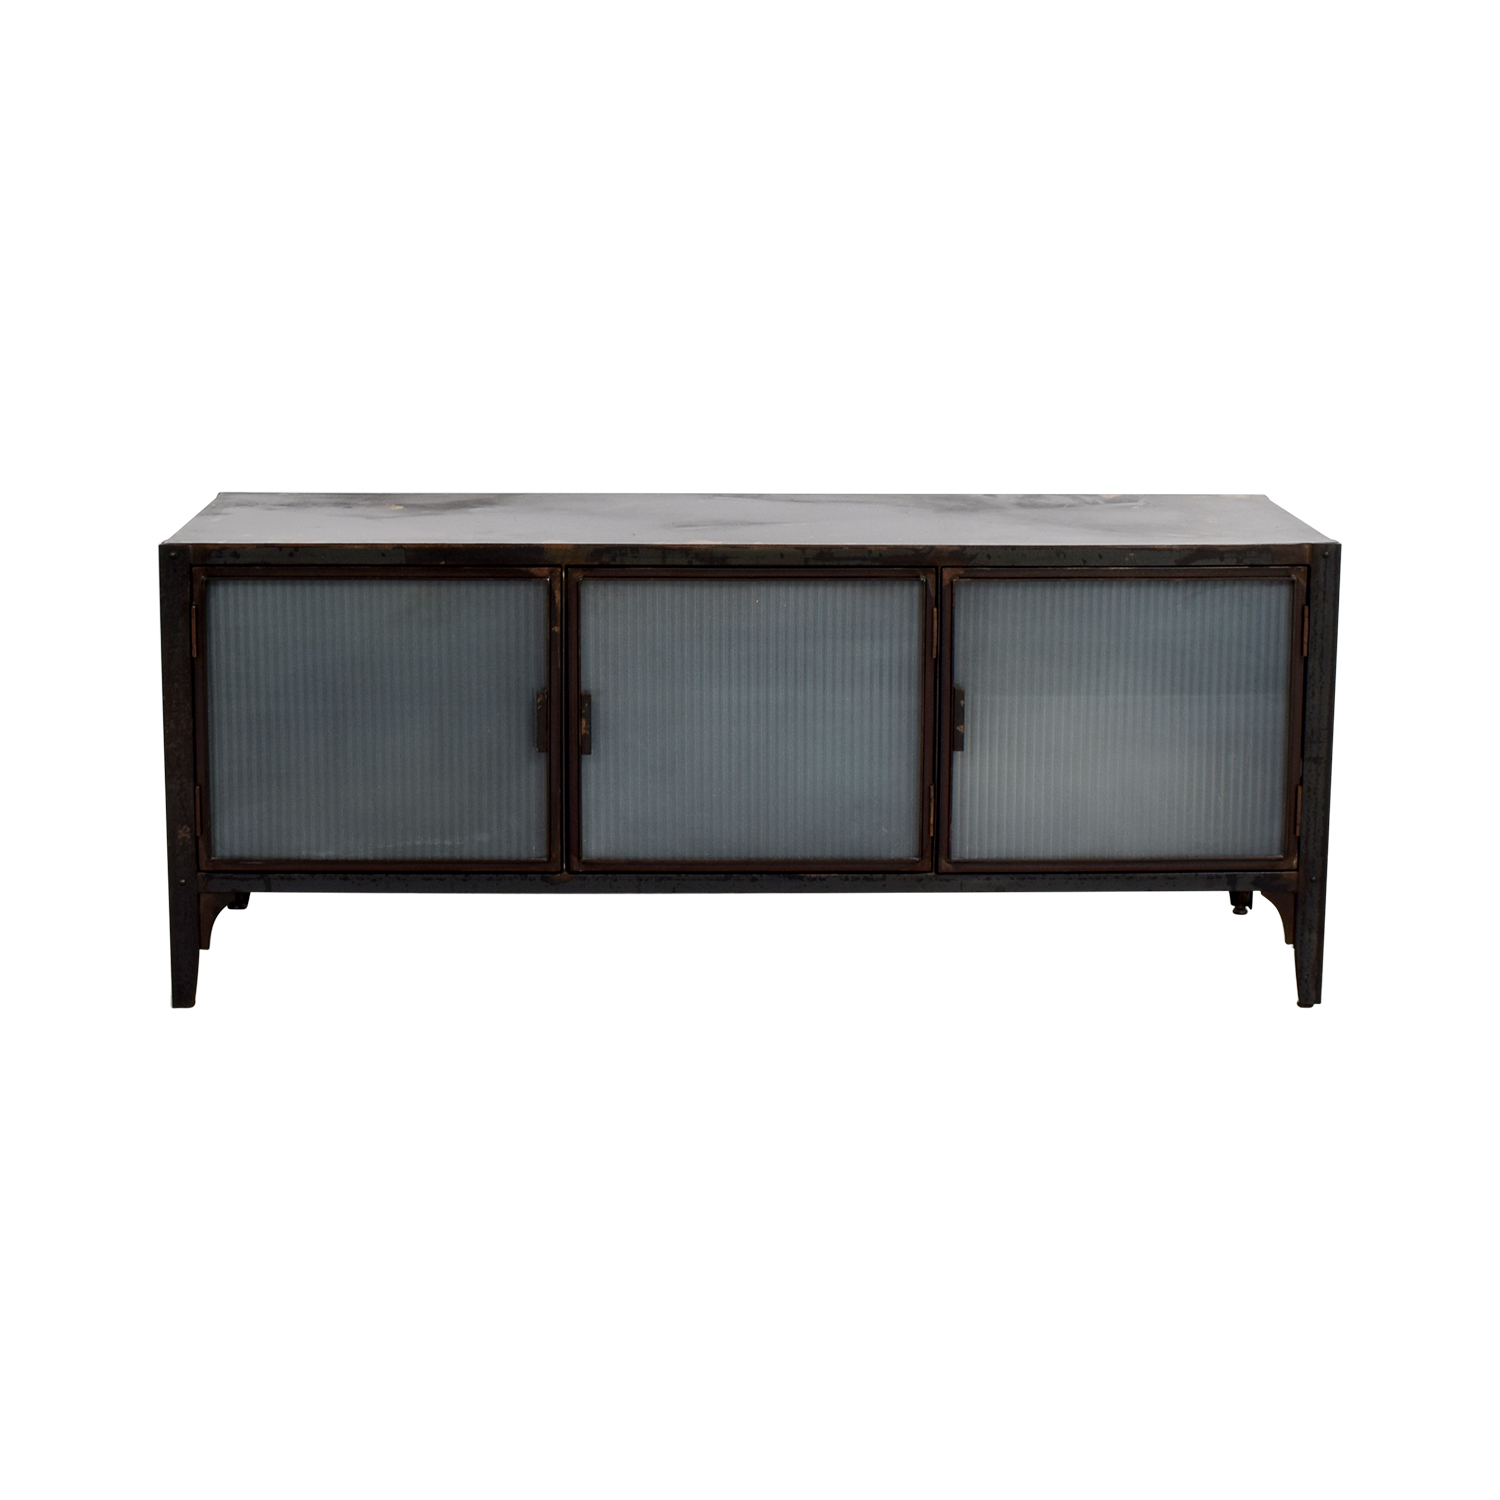 Crate & Barrel Crate & Barrel Wood and Glass Media Storage Unit discount